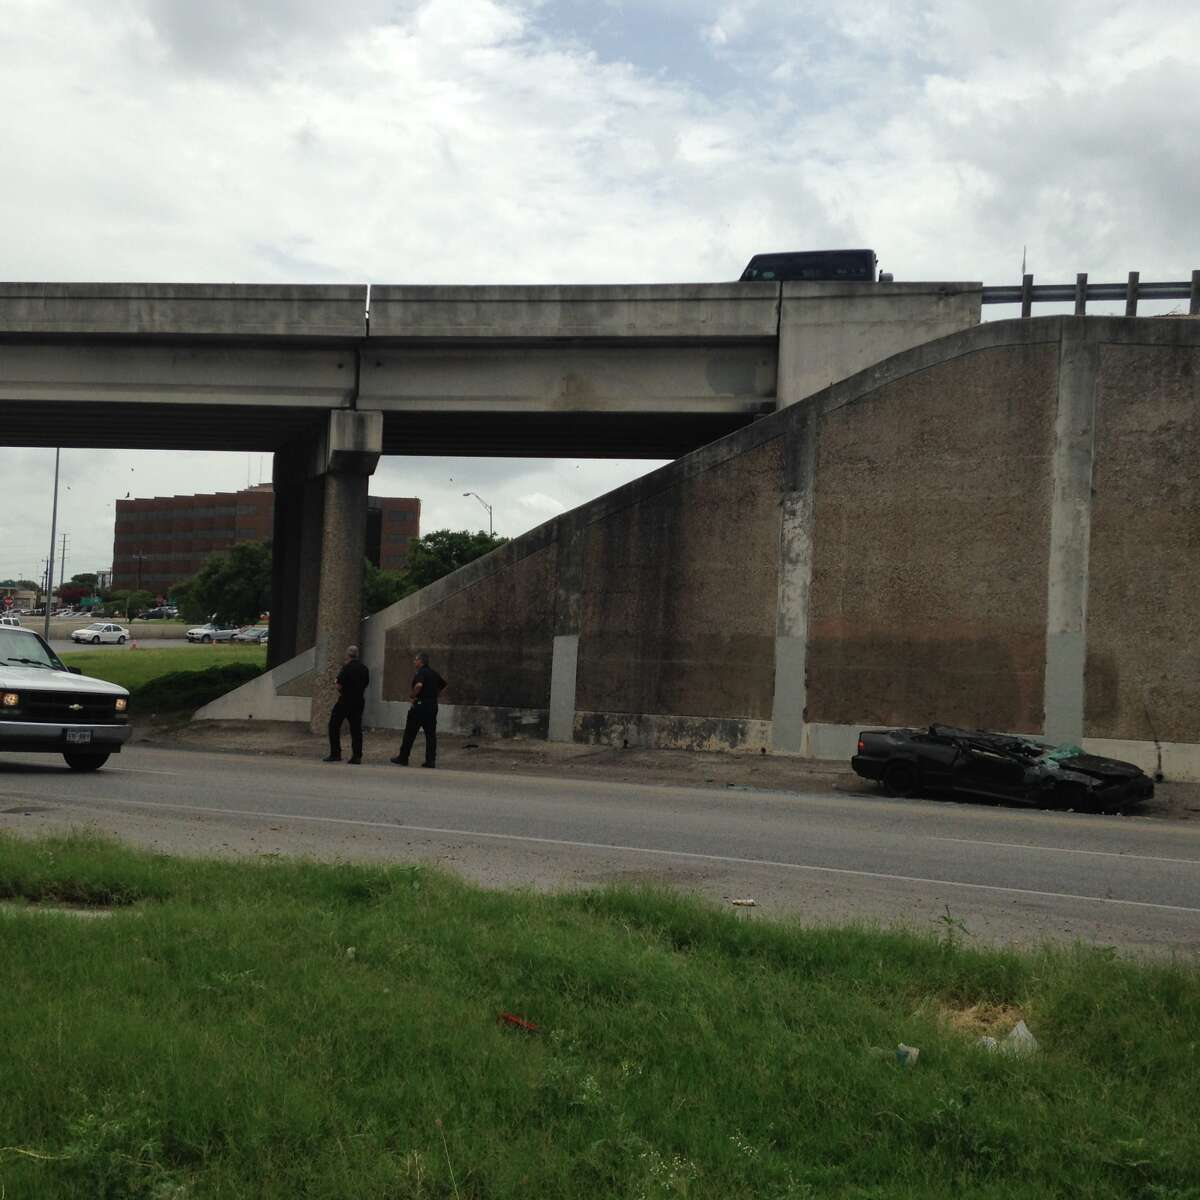 Injuries were reported in a rollover accident on the Loop 410 westbound exit ramp from northbound Interstate 35.